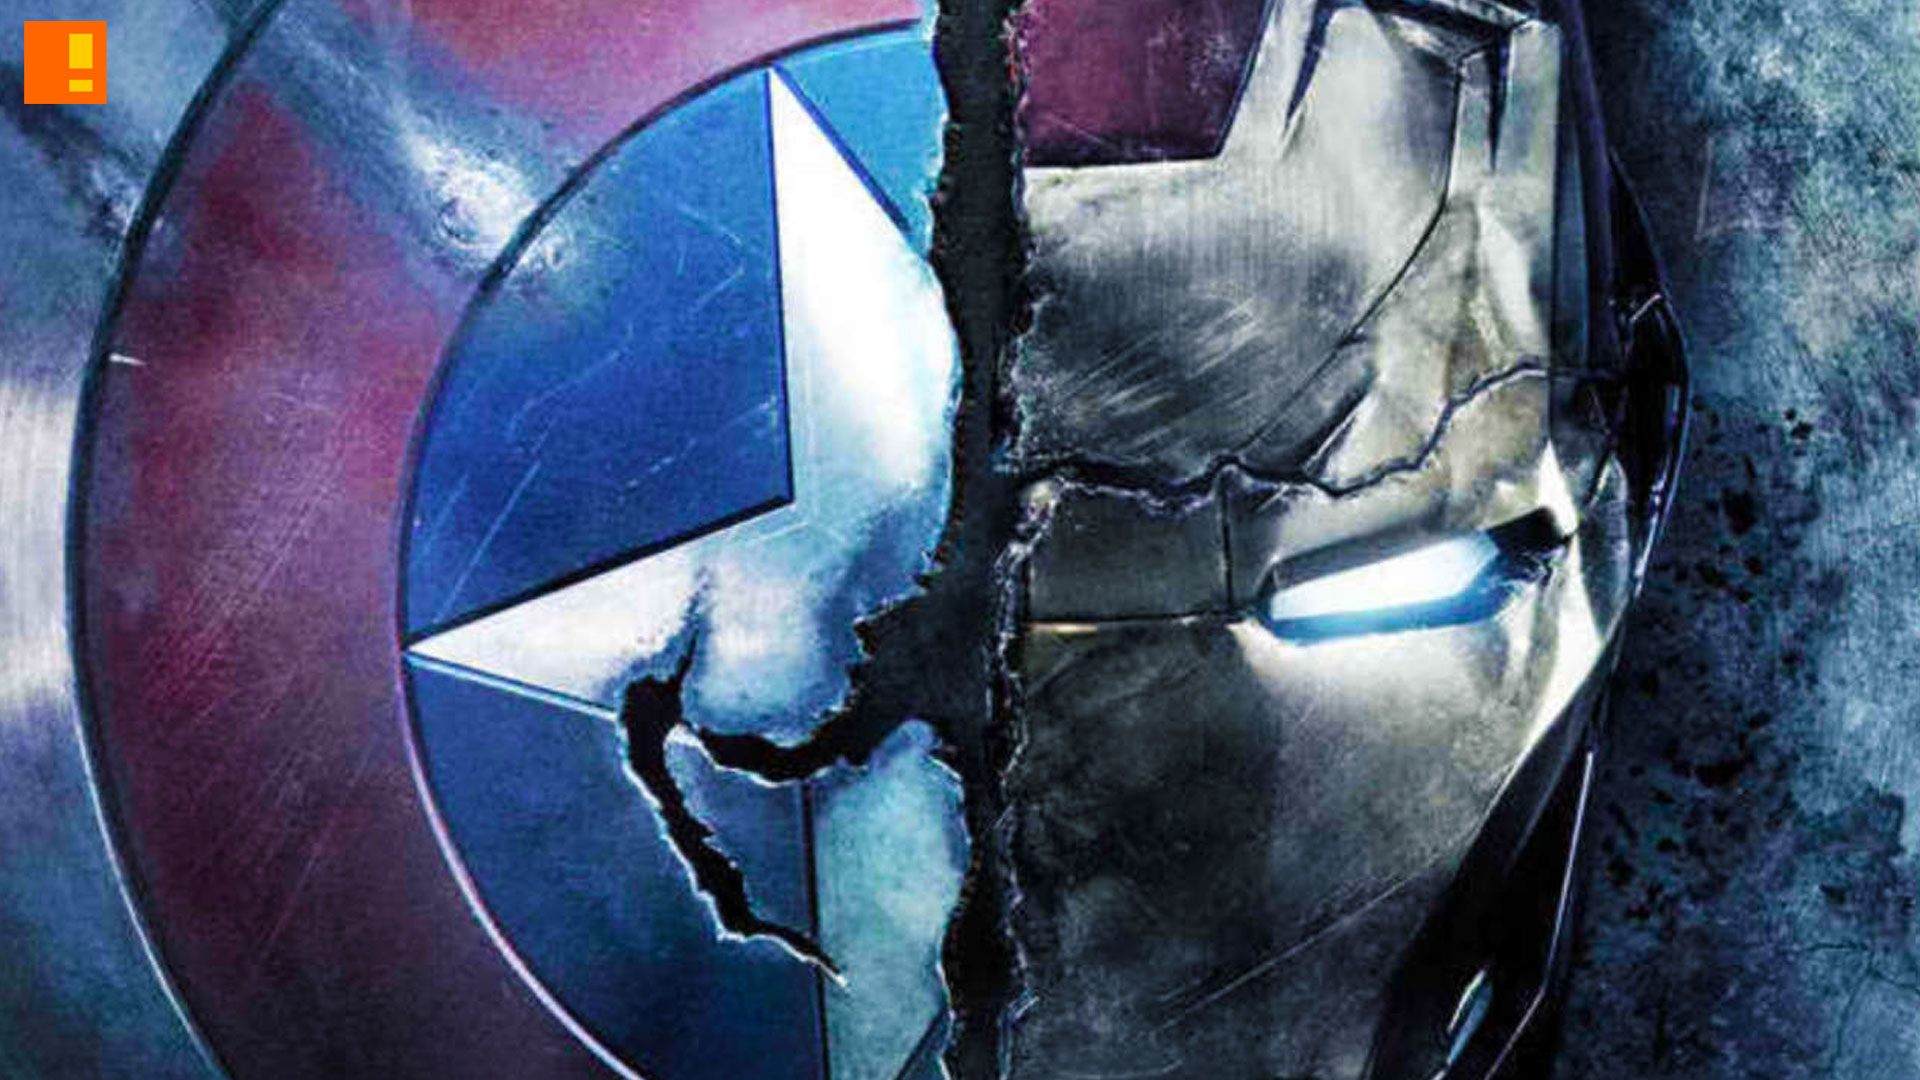 Captain America Civil War Gives Sneak Peek At Coming Trailer The